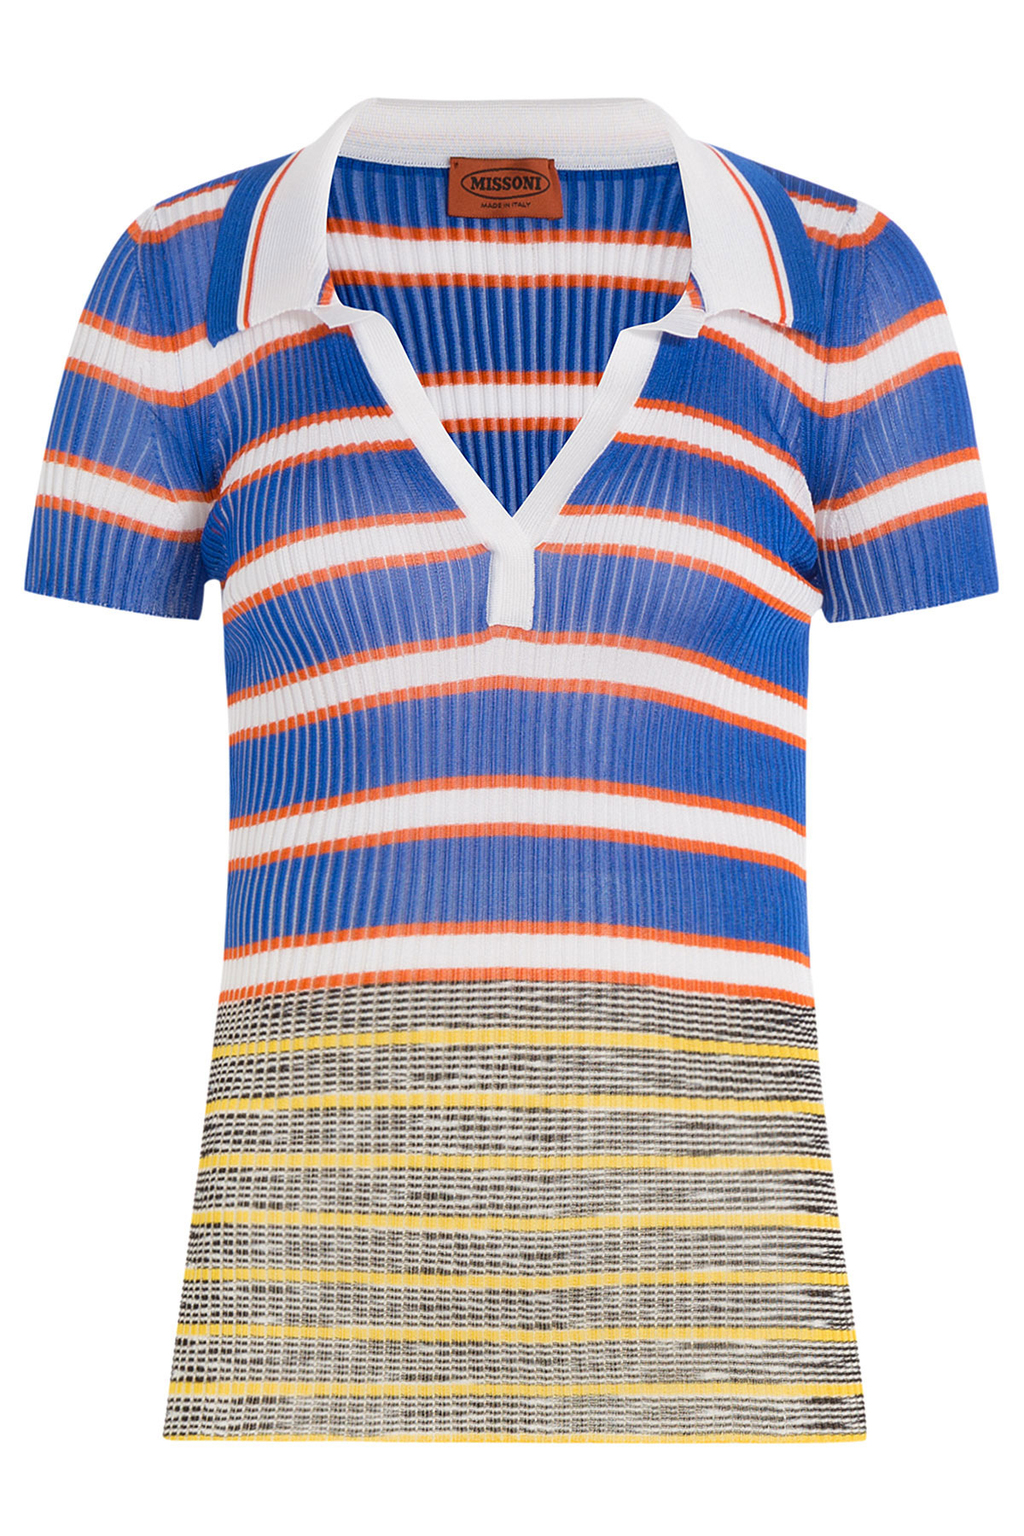 Striped Knit Polo Shirt Multicolor - pattern: horizontal stripes; style: shirt; bust detail: buttons at bust (in middle at breastbone)/zip detail at bust; secondary colour: white; predominant colour: royal blue; occasions: casual, creative work; length: standard; fibres: viscose/rayon - 100%; fit: body skimming; neckline: no opening/shirt collar/peter pan; sleeve length: short sleeve; sleeve style: standard; texture group: knits/crochet; pattern type: knitted - fine stitch; pattern size: big & busy (top); multicoloured: multicoloured; season: s/s 2016